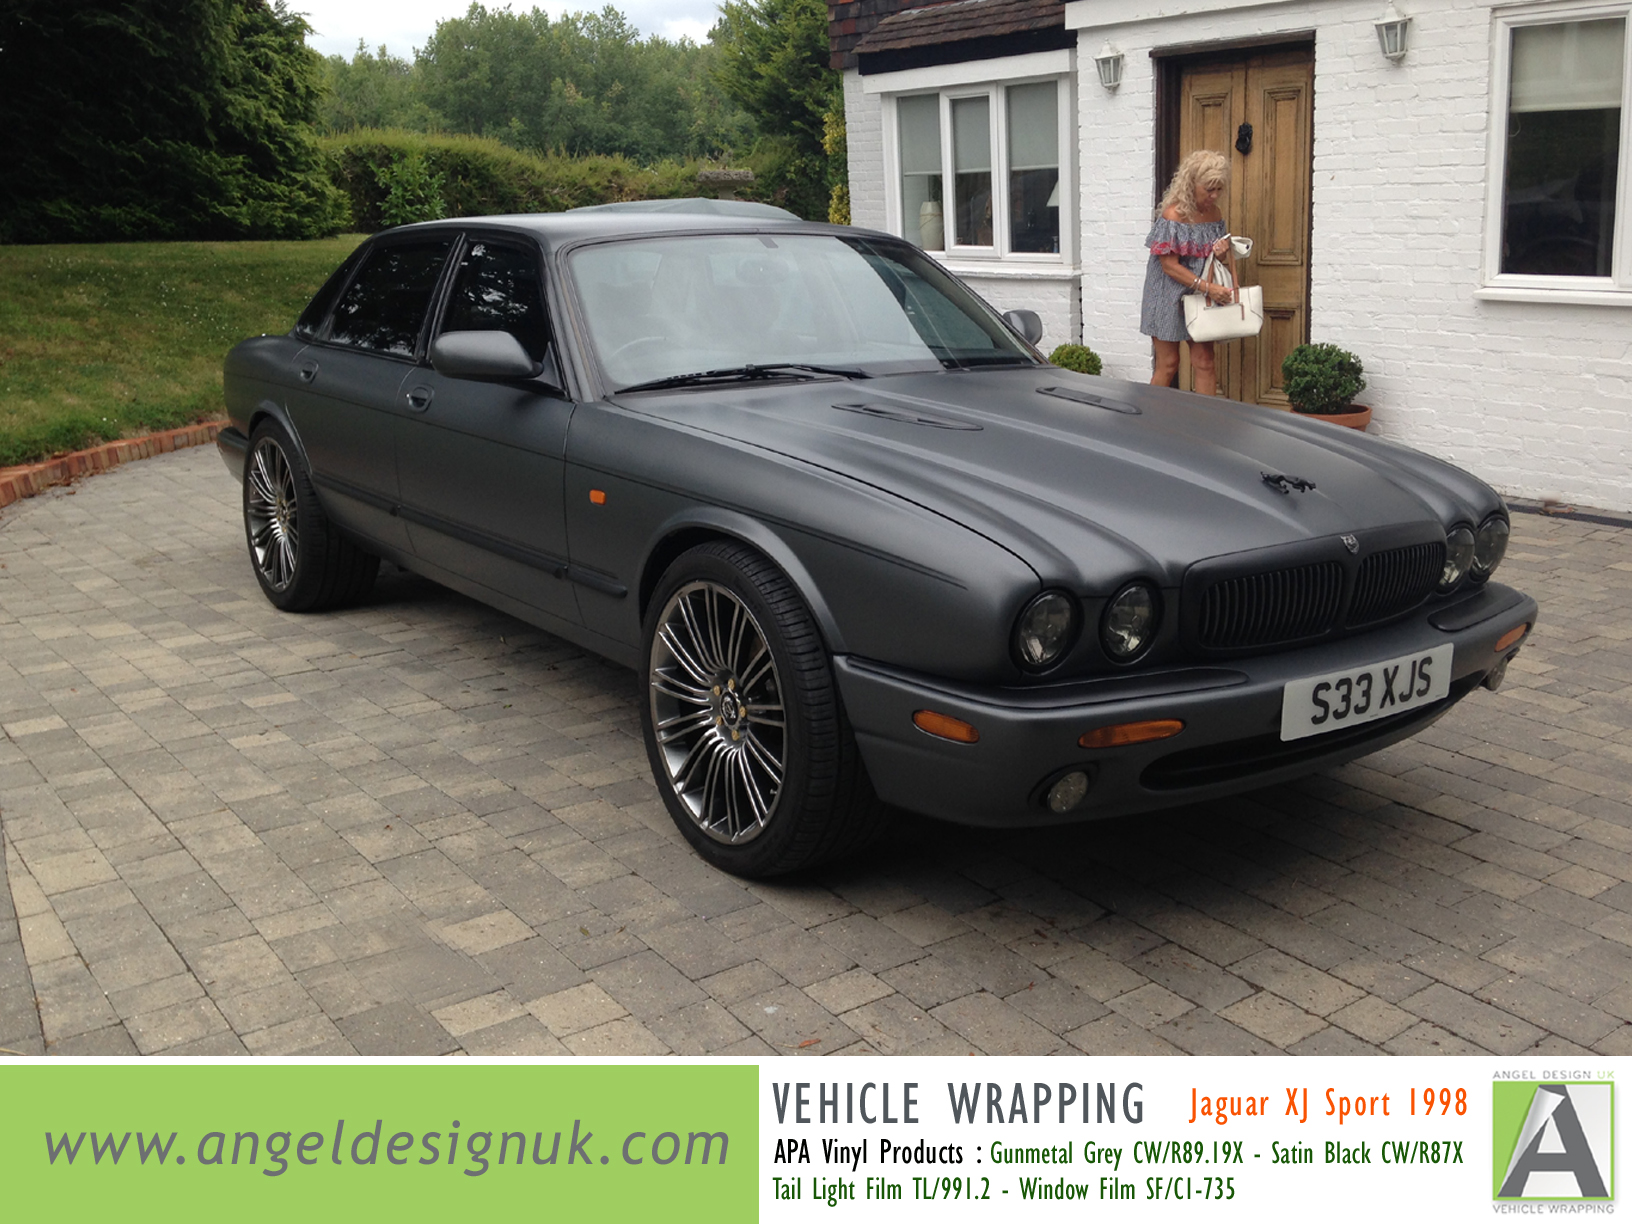 ANGEL DESIGN UK Vehicle Wrapping Jaguar XJ Sport 1998 Gunmetal Grey Pic 1